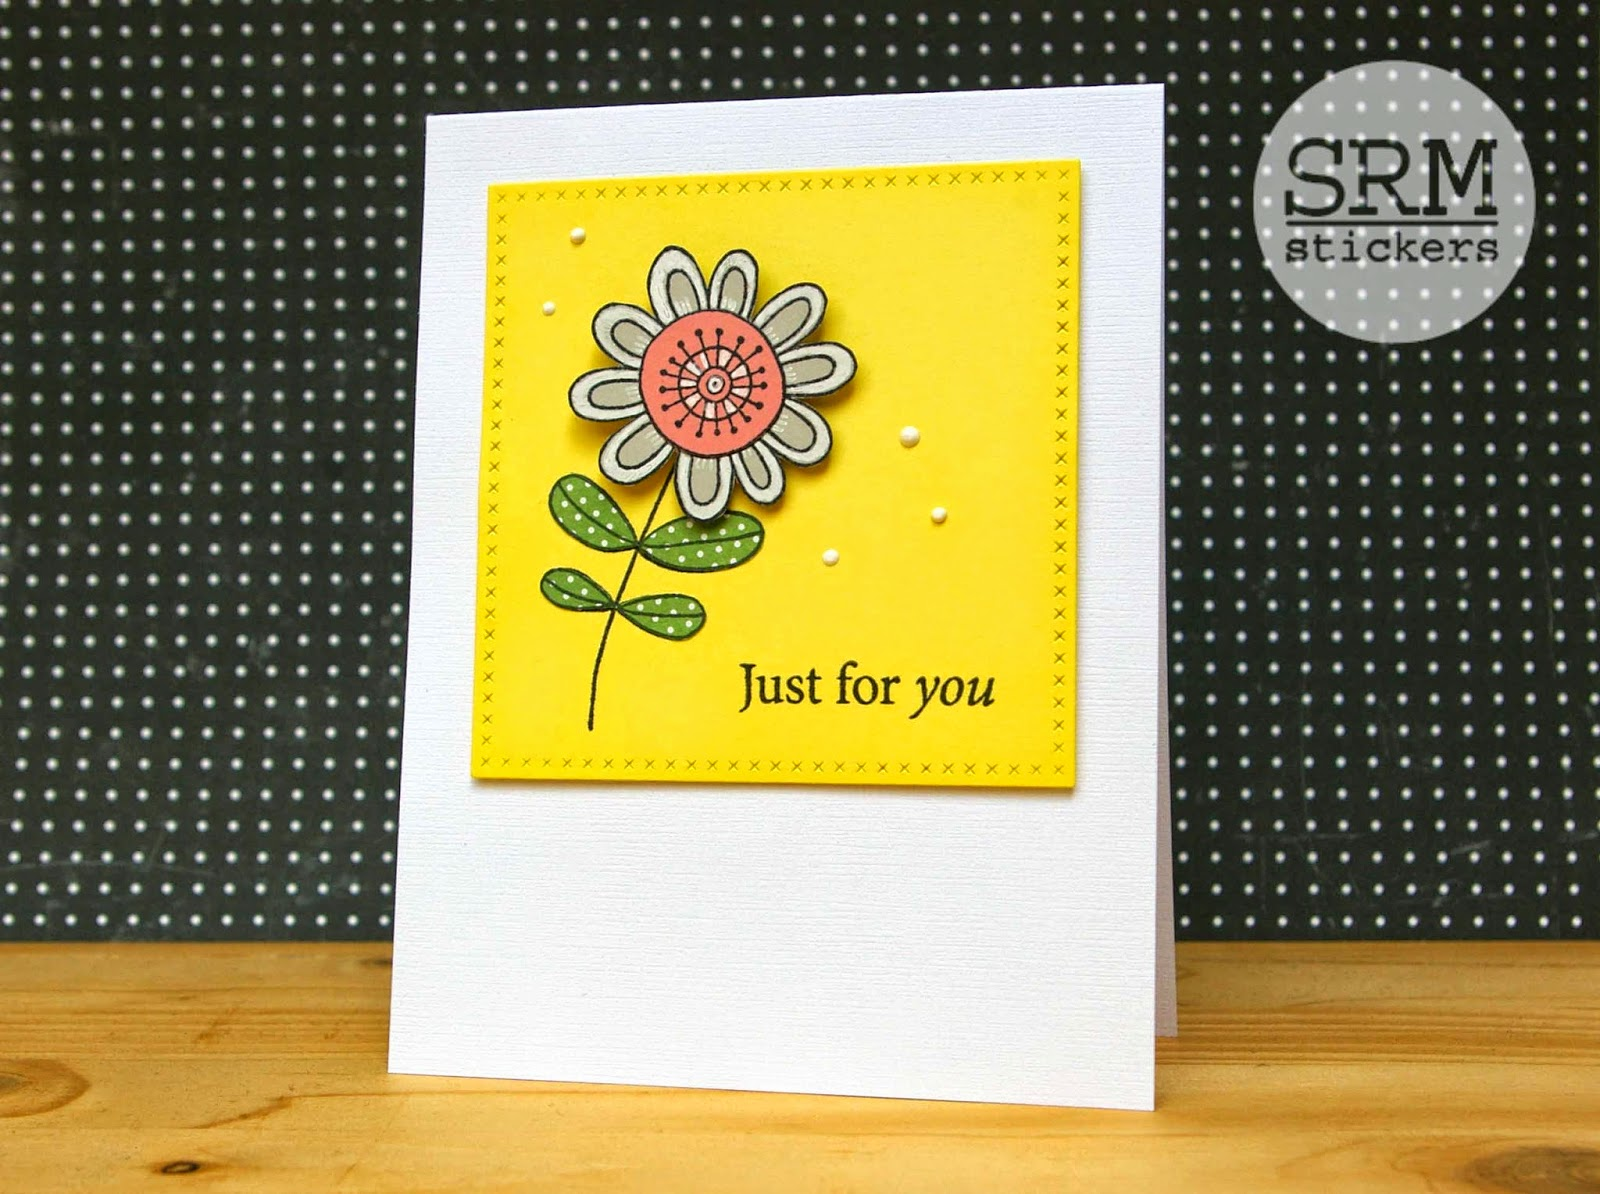 SRM Stickers Blog - Floral Spring Card Set by Lorena - #cards #cardset #giftset #clearstamps #janesdoodles #A2box #clearbox #DIY